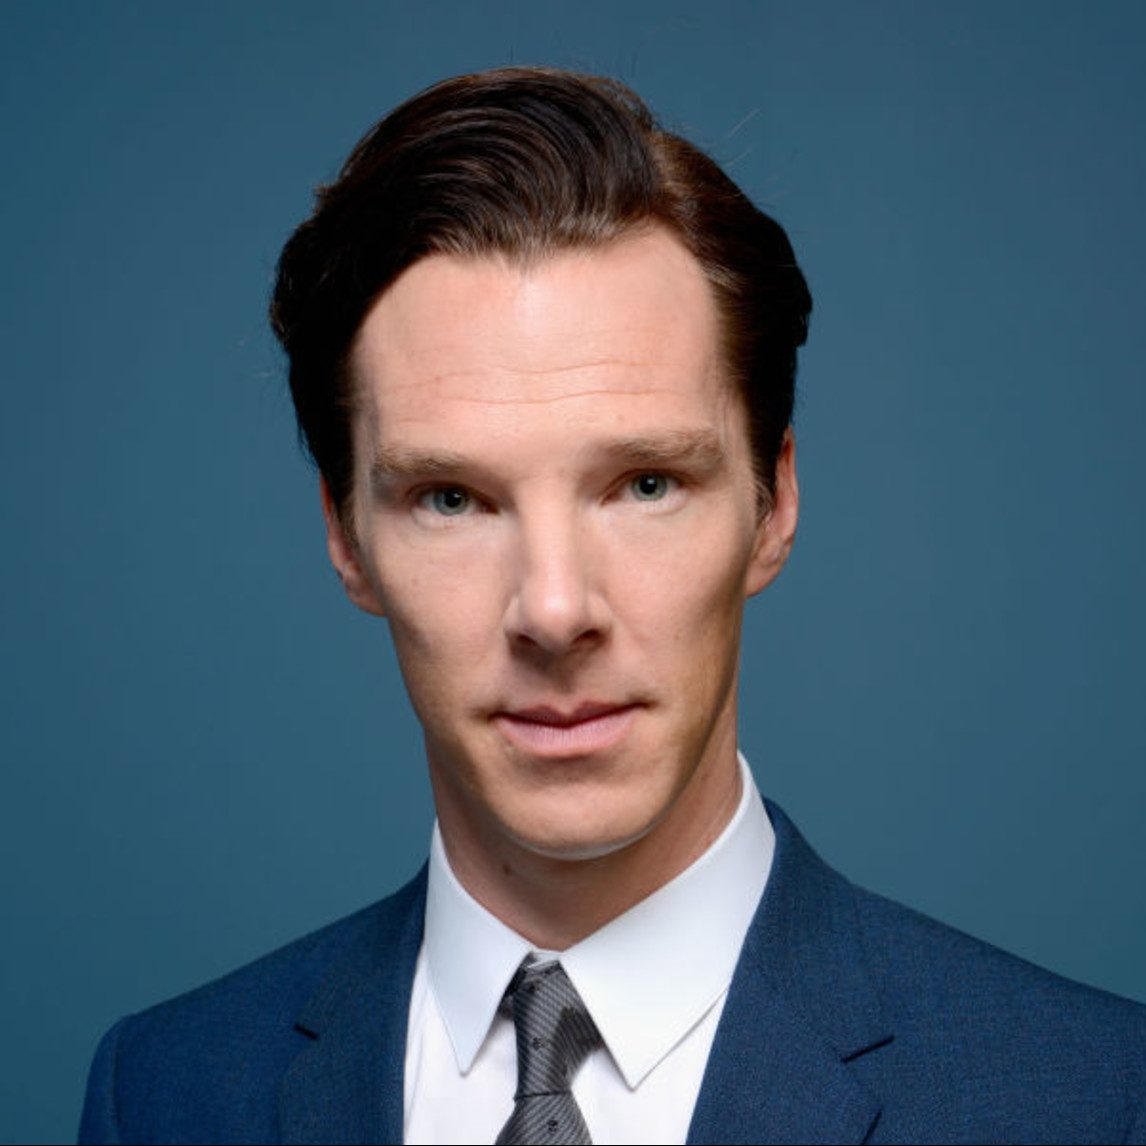 benedict cumberbatchjpg e1580122048293 20 Actors Who Would Kill It As The Next James Bond